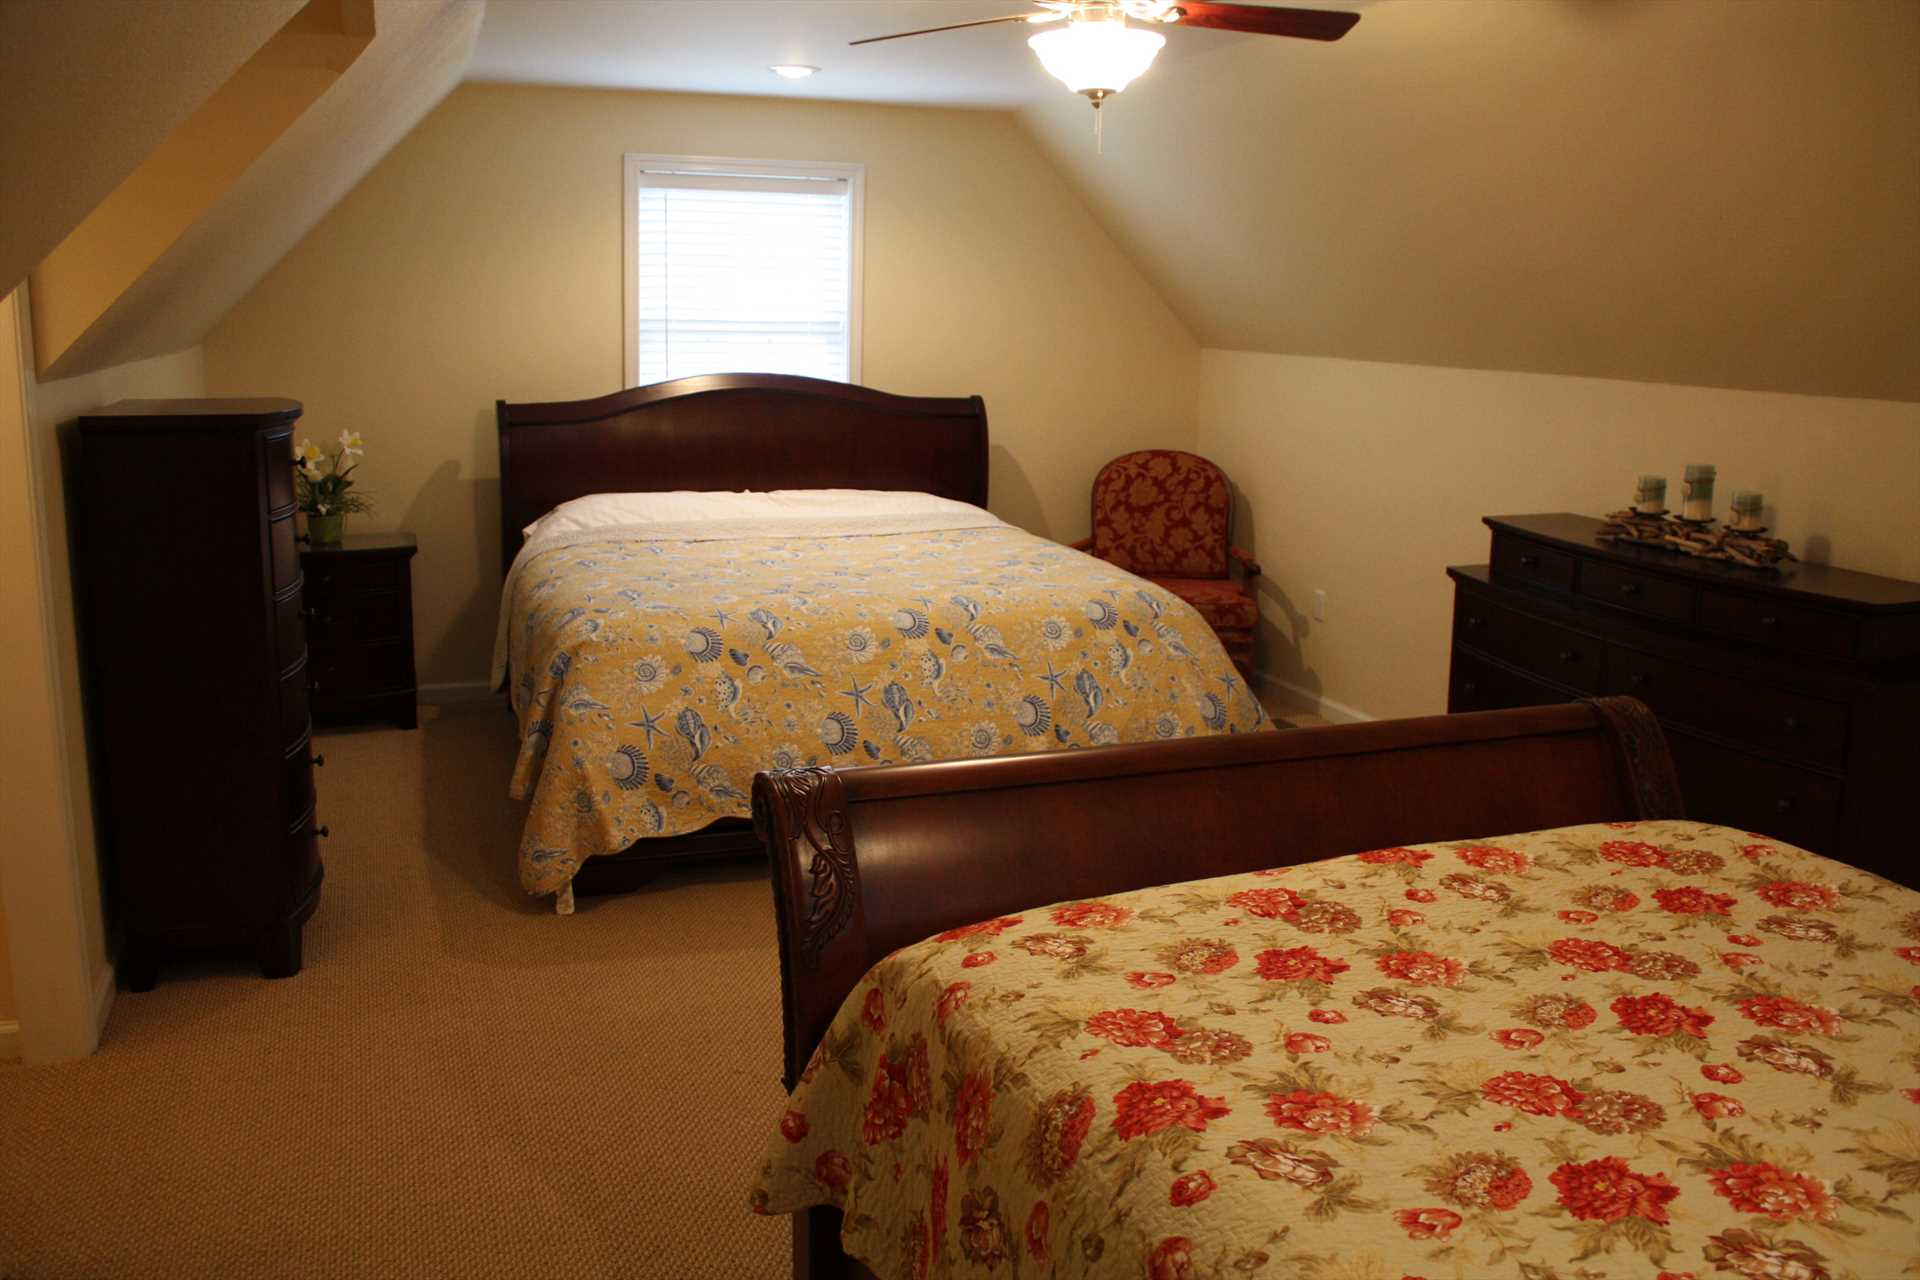 King size bed and Queen size bed - Second floor